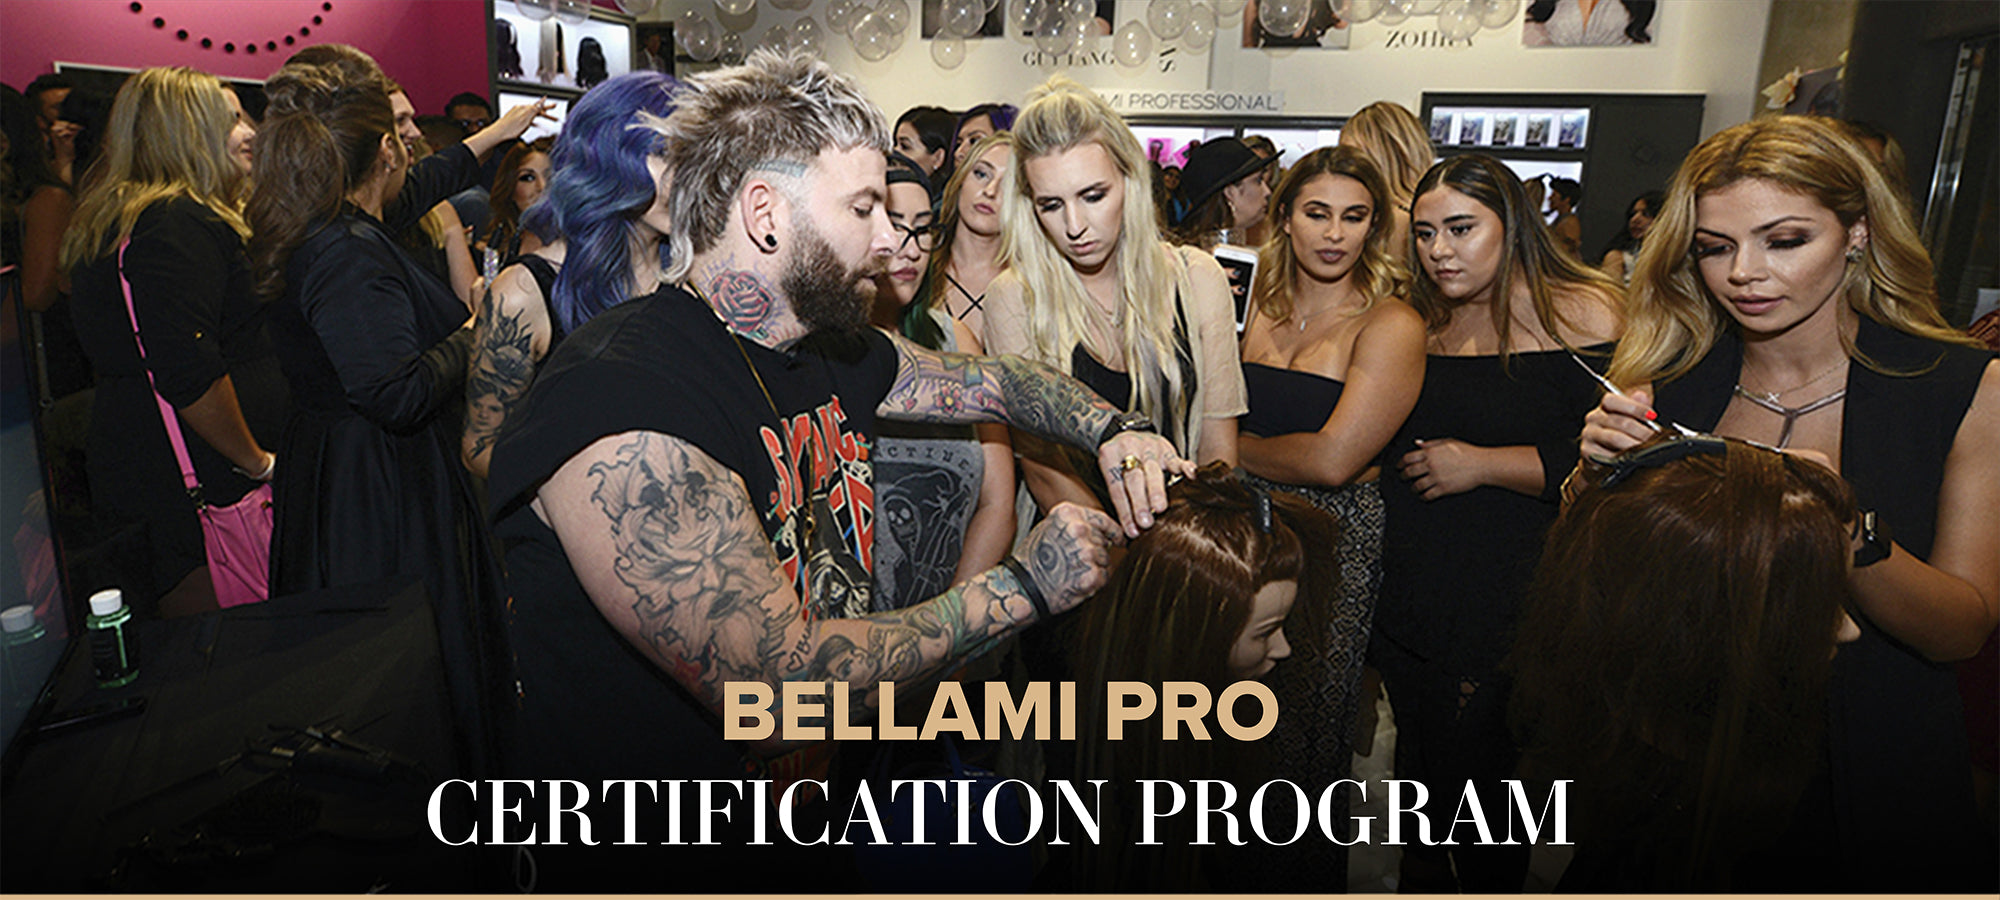 BELLAMI PROFESSIONAL CERTIFICATION PROGRAM